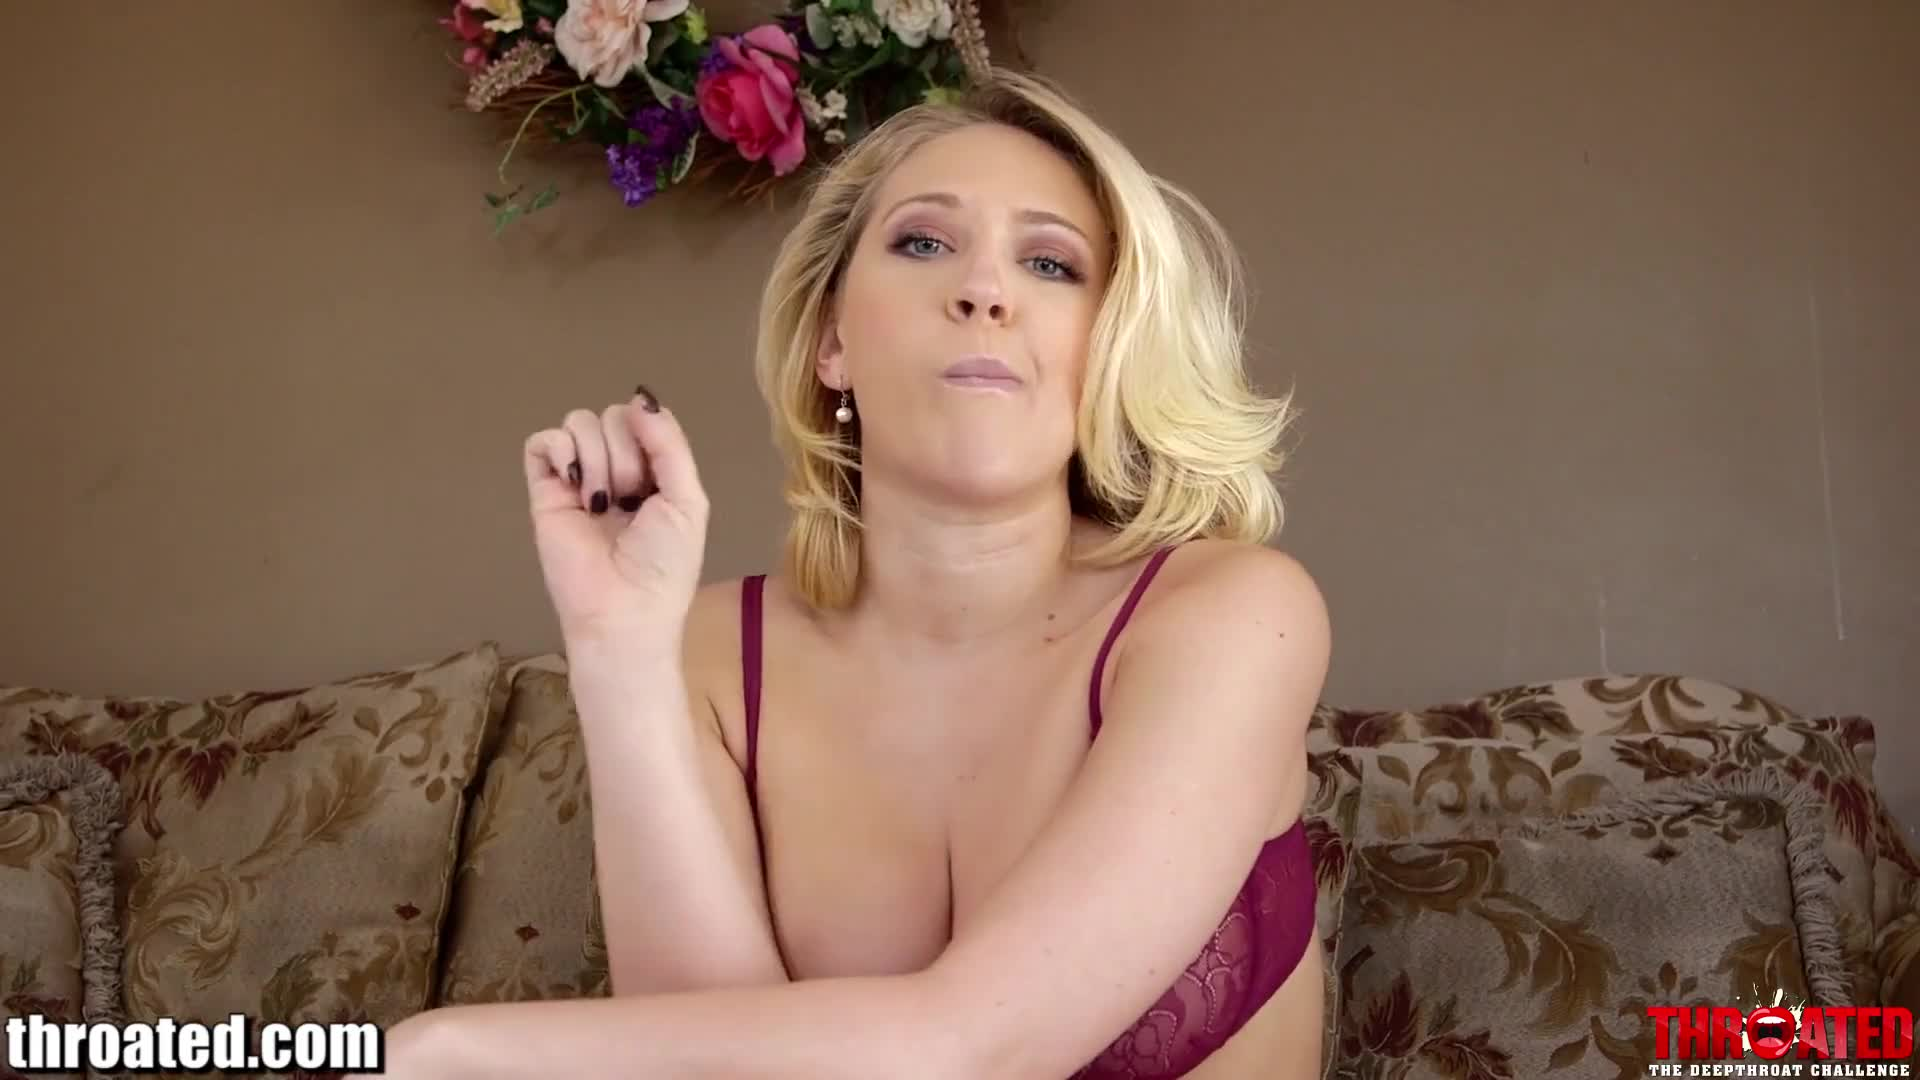 Misterfake beautiful blonde milf gives outstanding blowjob